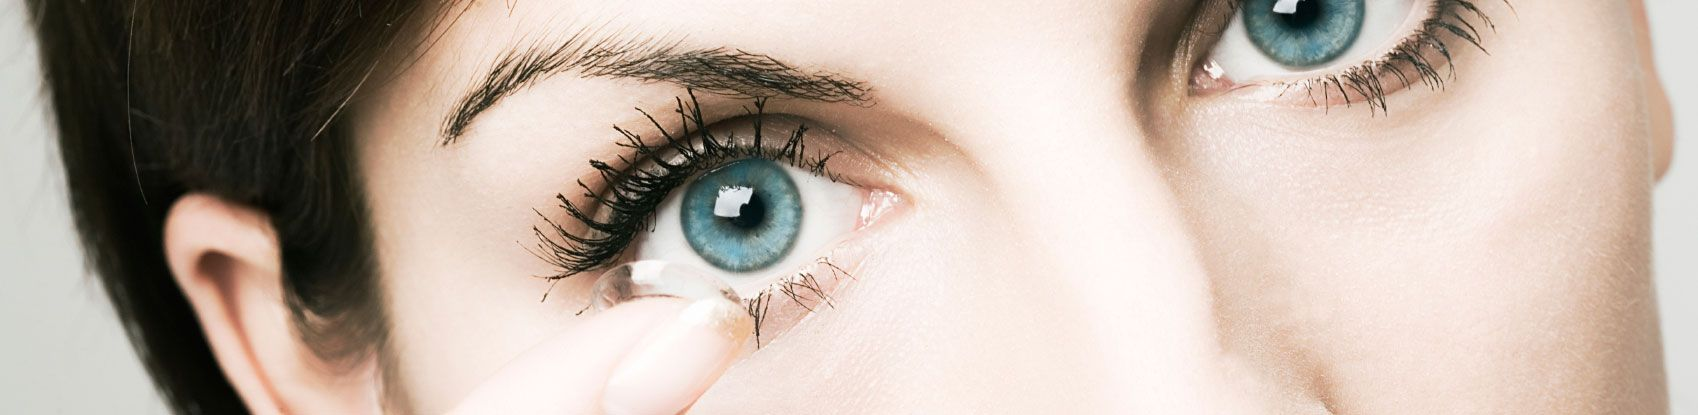 Which are the best contact lenses for dry eyes?